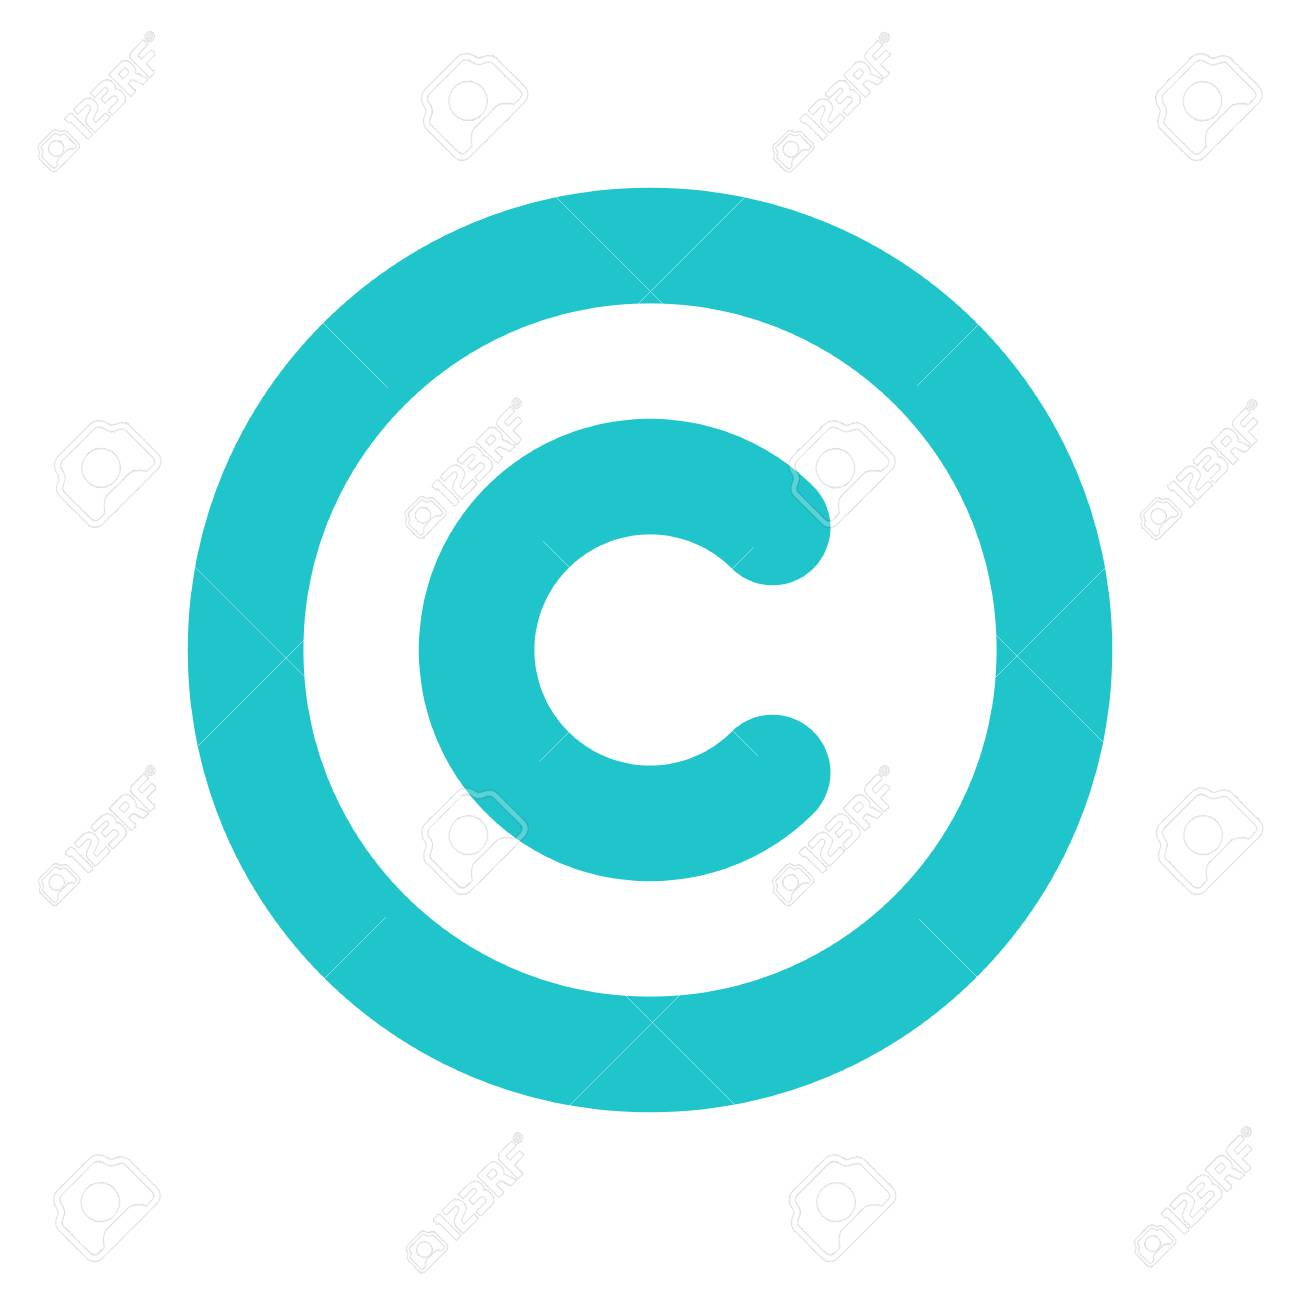 Copyright Symbol In Html Image collections - meaning of this symbol